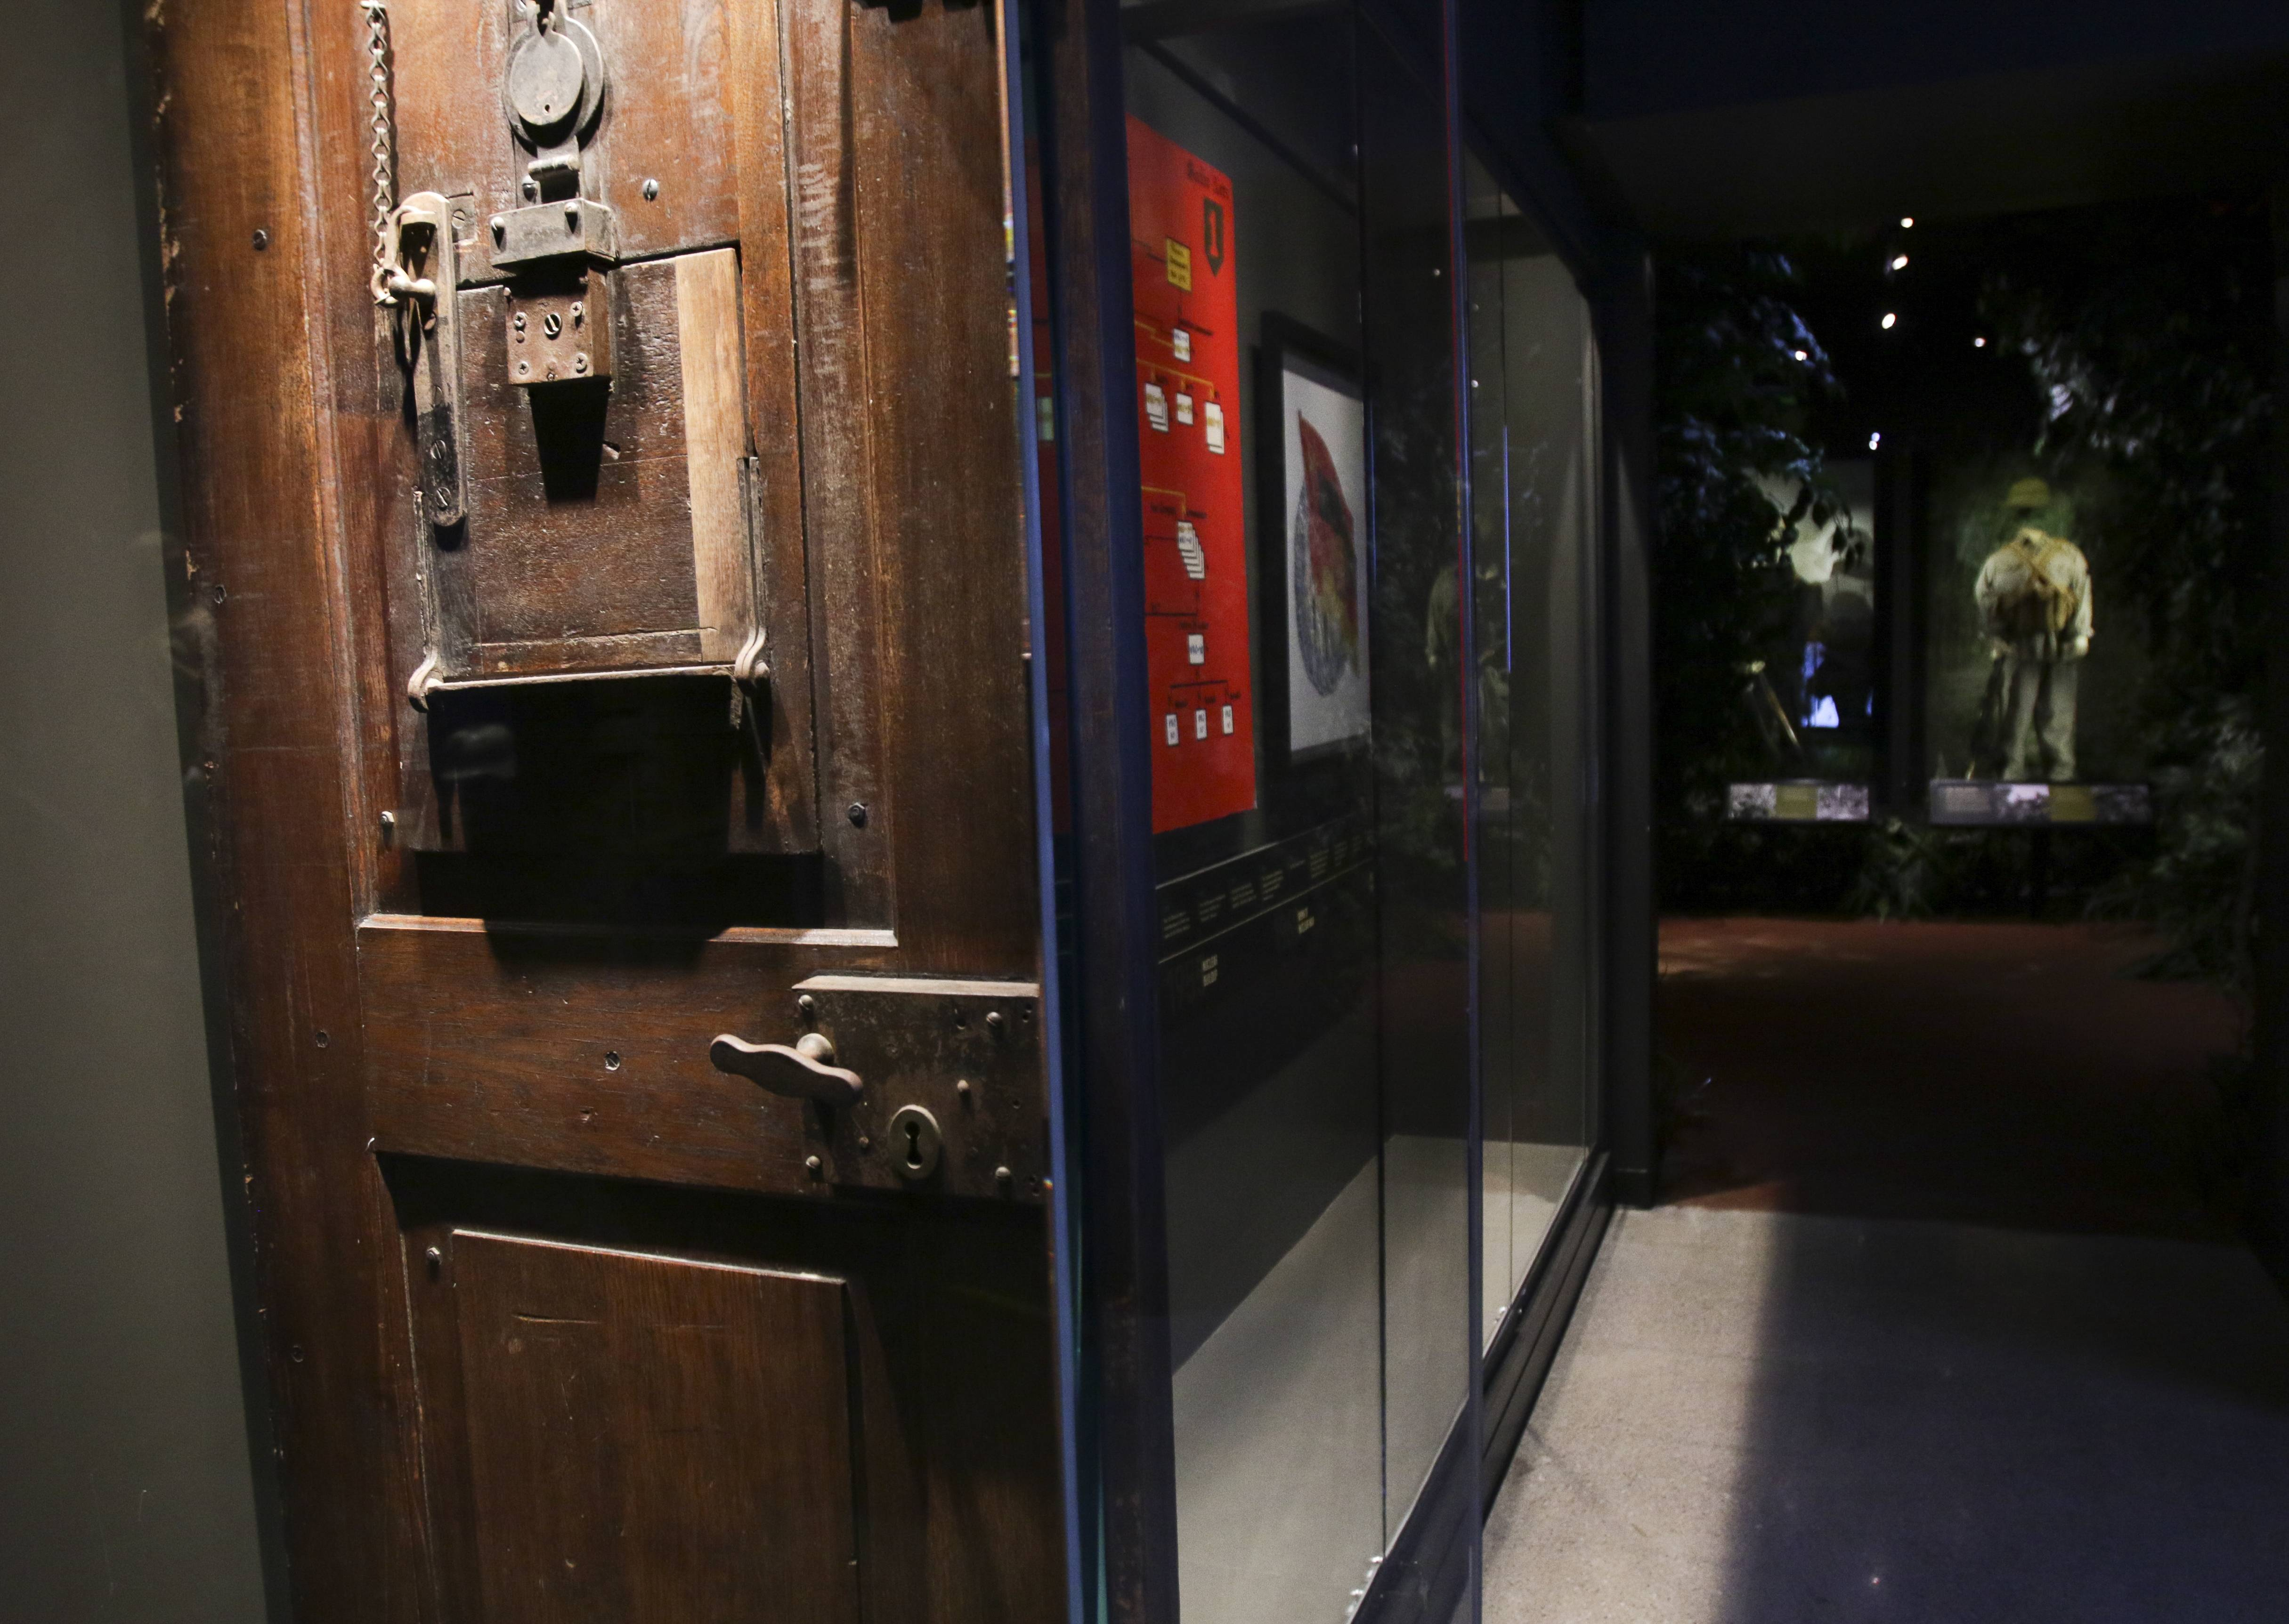 Among the museum's existing artifacts is one of the cell doors from the Nuremberg Prison that held Nazi criminals. Soldiers from the Army's 1st Infantry Division stood guard outside the cells.